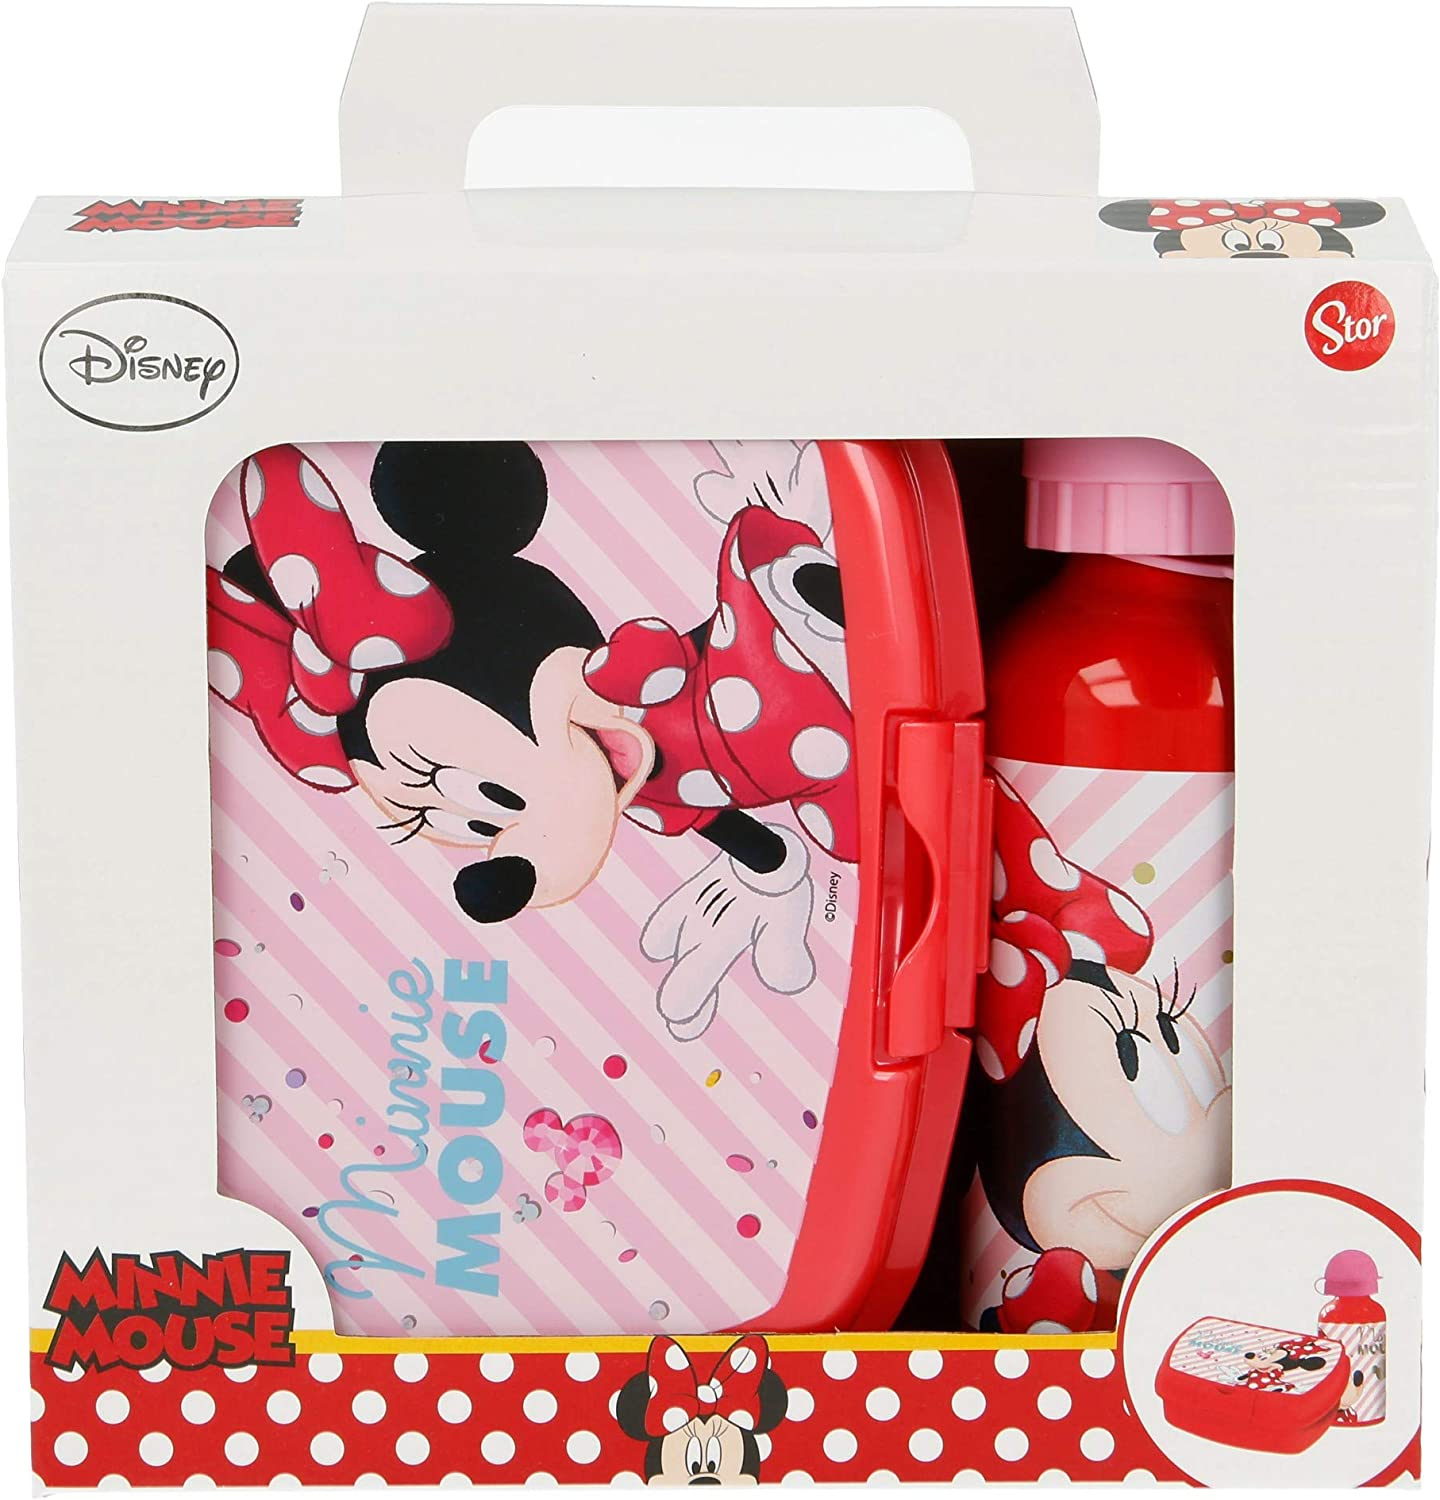 SET URBAN VUELTA AL COLE 2 PCS. (BOTELLA ALUMINIO 400 ML, SANDWICHERA URBAN) MINNIE MOUSE - DISNEY - ELECTRIC DOLL